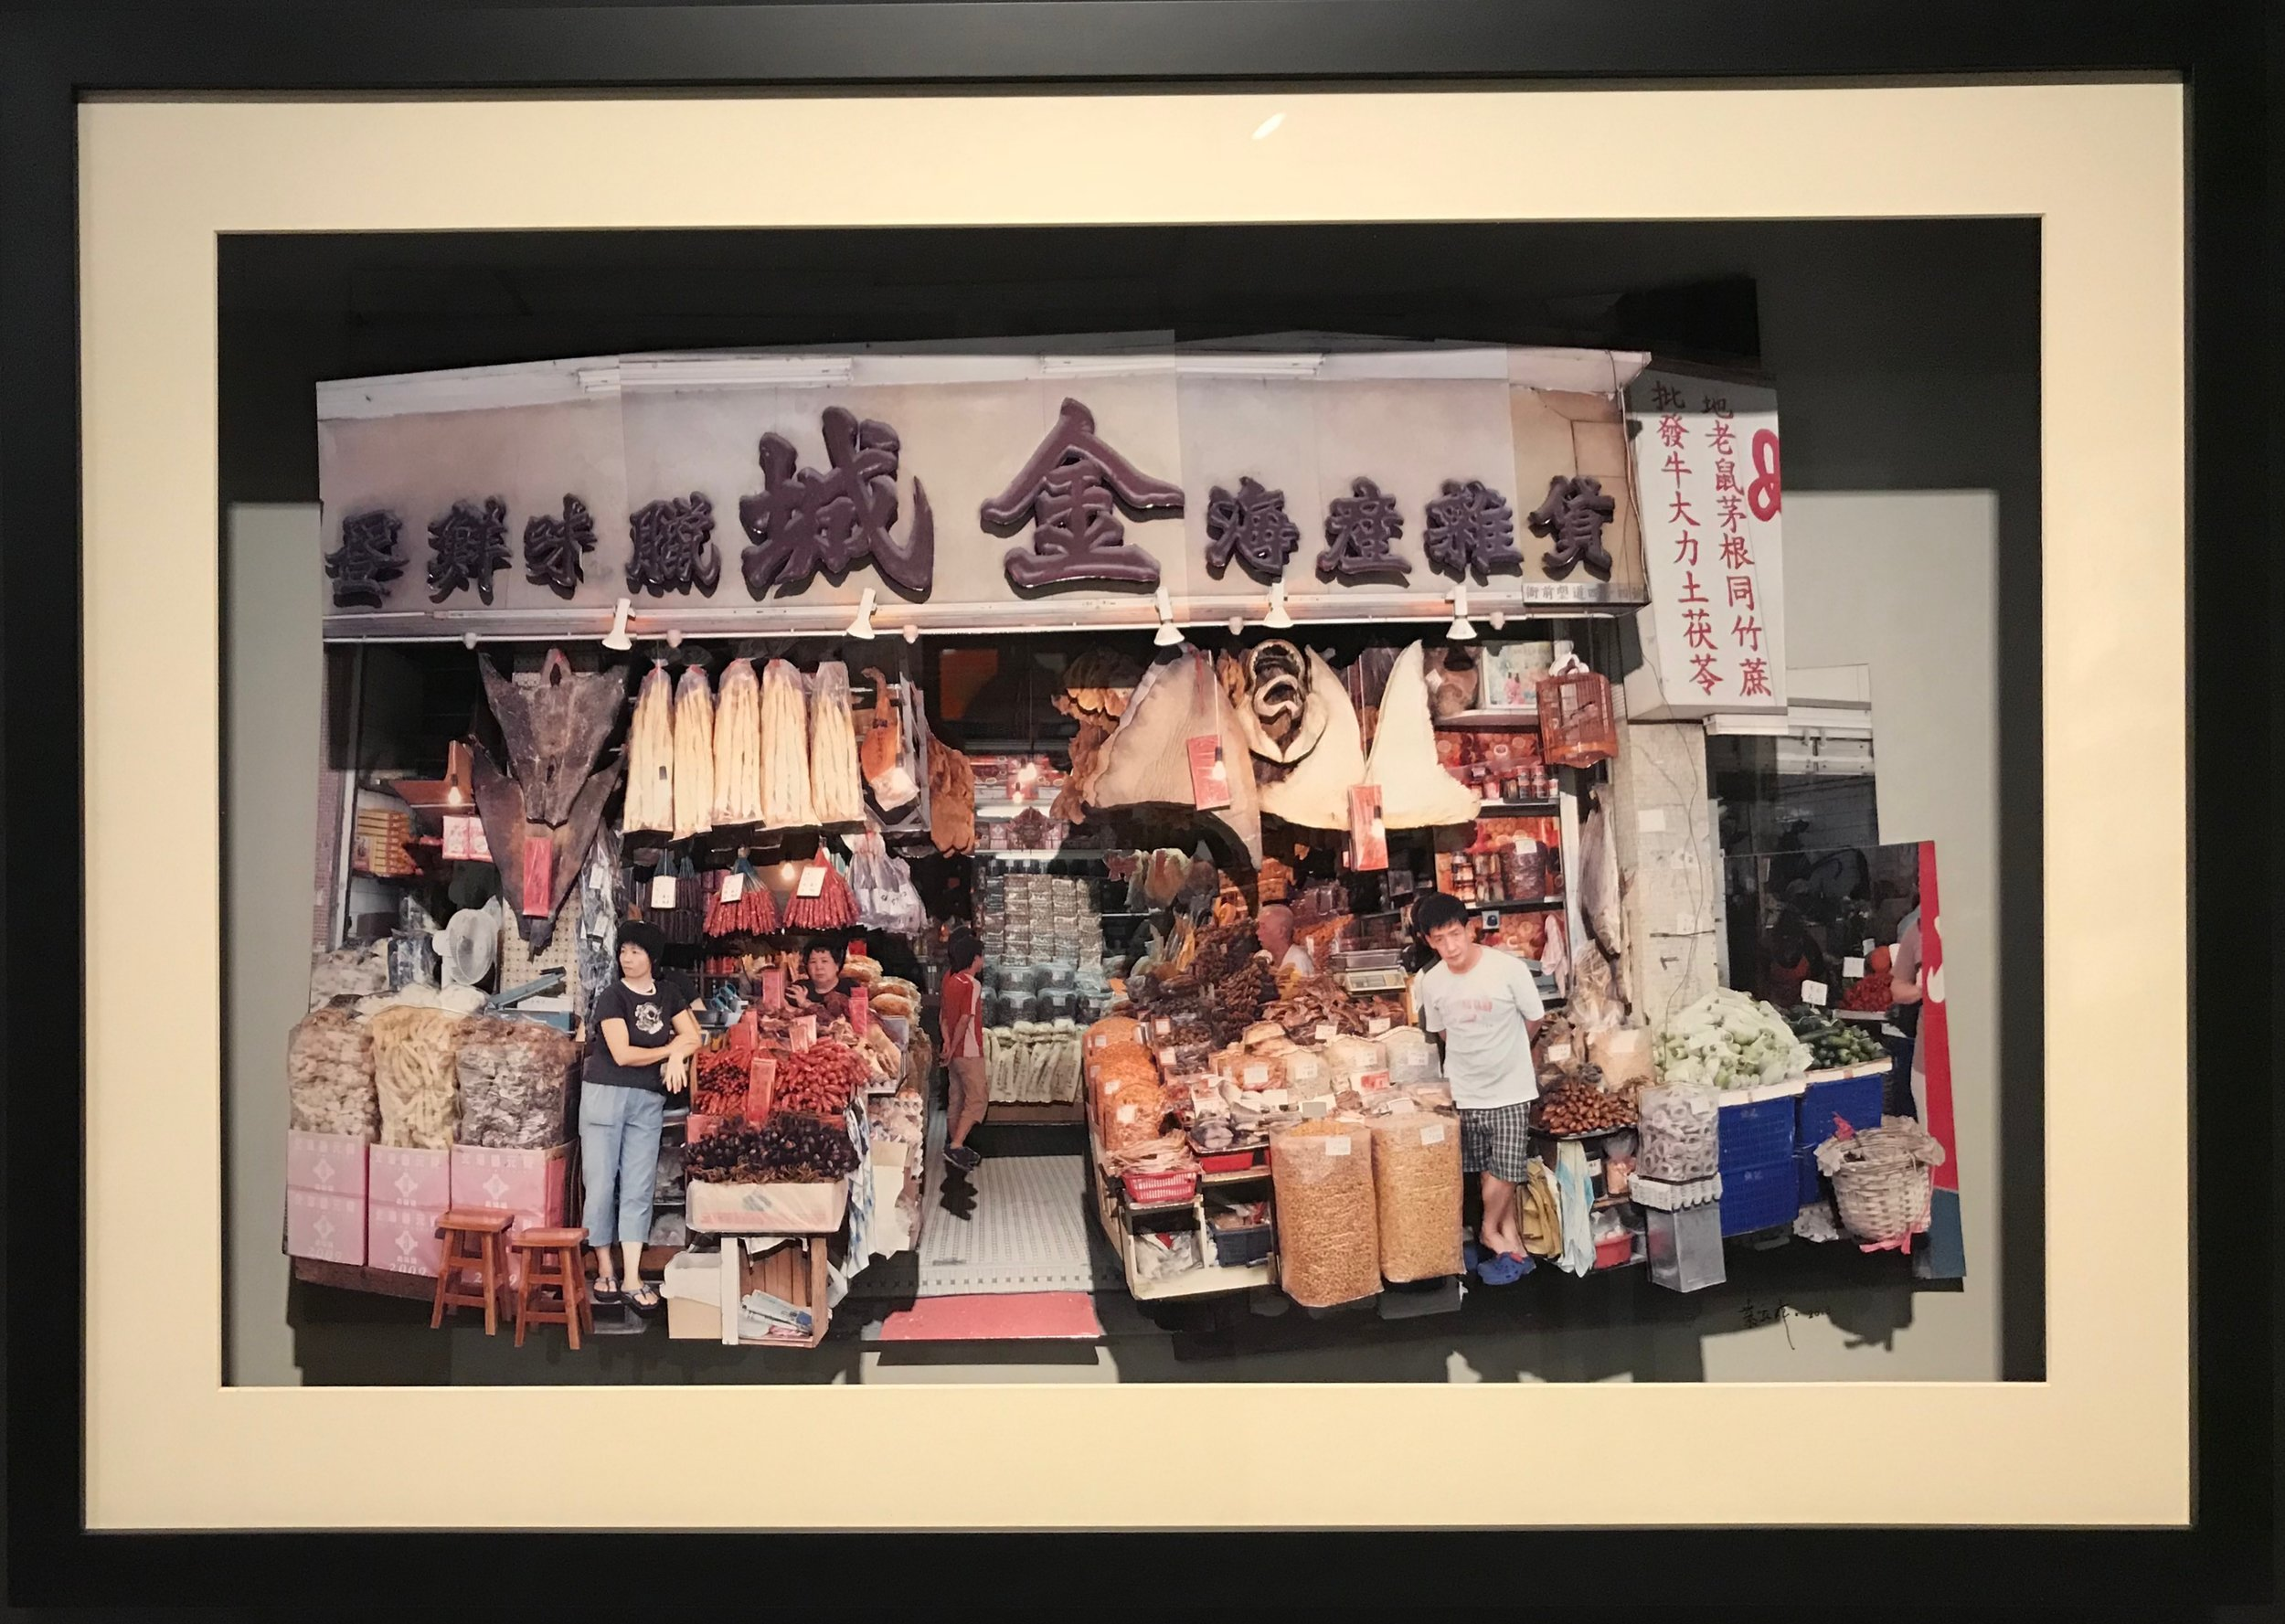 葉家偉 Alexis Ip, 金城海味·九龍城  Kam Shing Dried Seafood (Kowloon City,  Hong Kong, 2018) 97 x 66 cm, HK$ 19,500 including frame